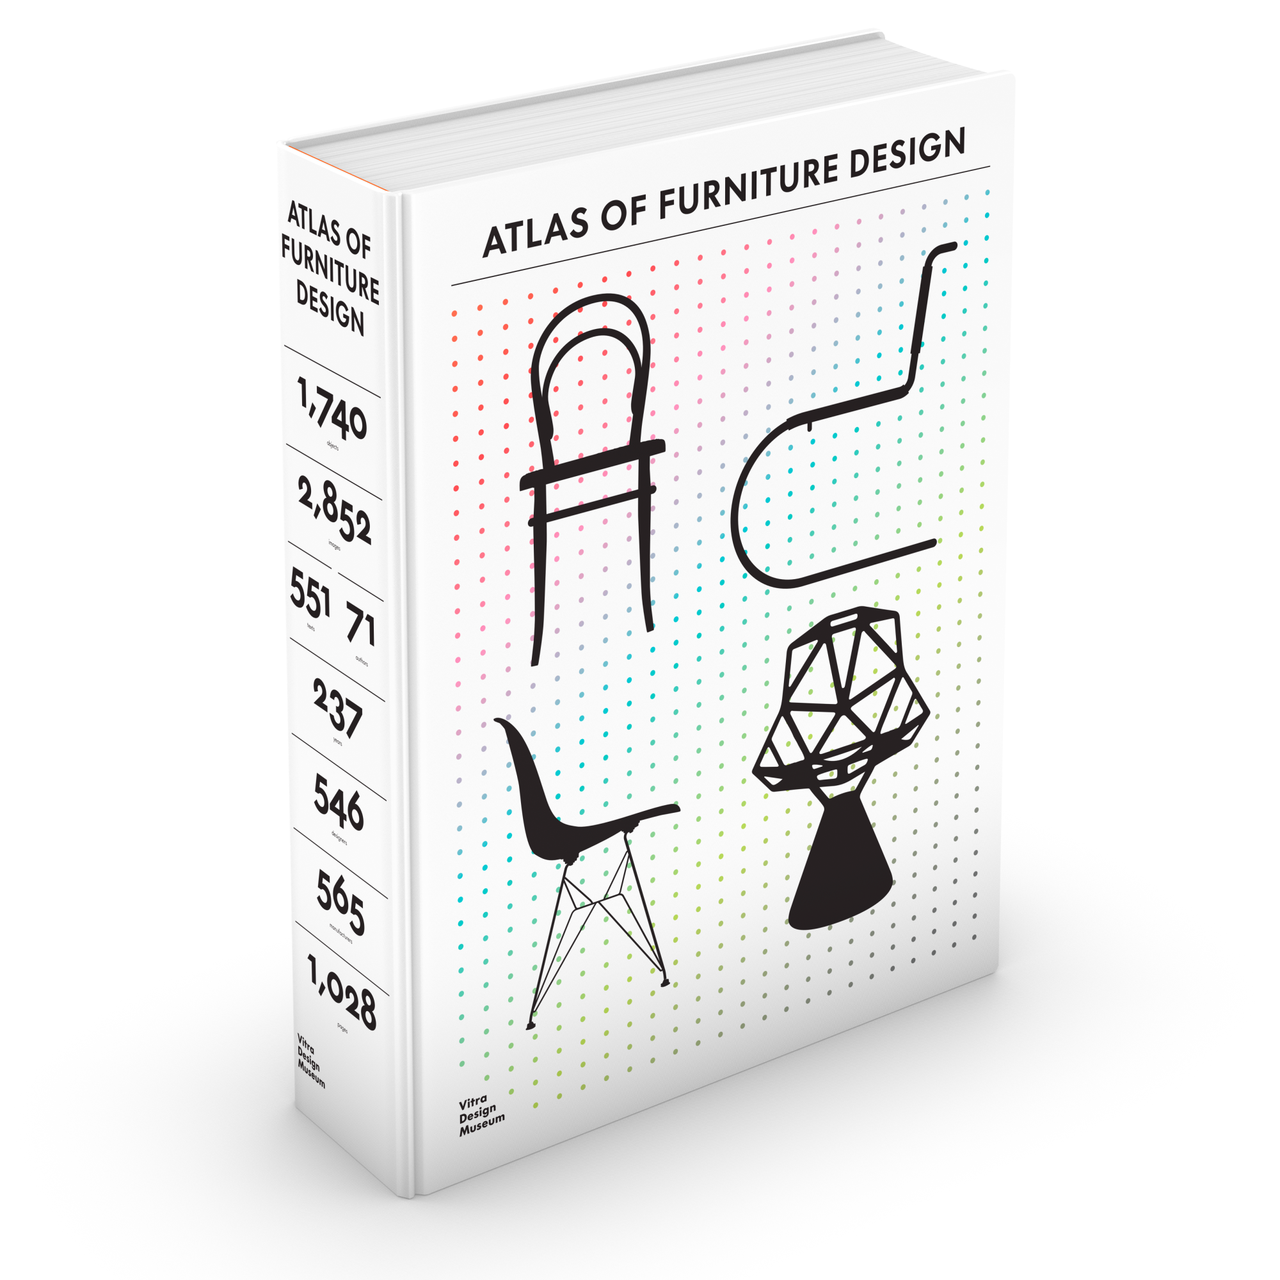 3D-Cover »Atlas of Furniture Design« © Vitra Design Museum, Graphic: Kobi Benezri Studio